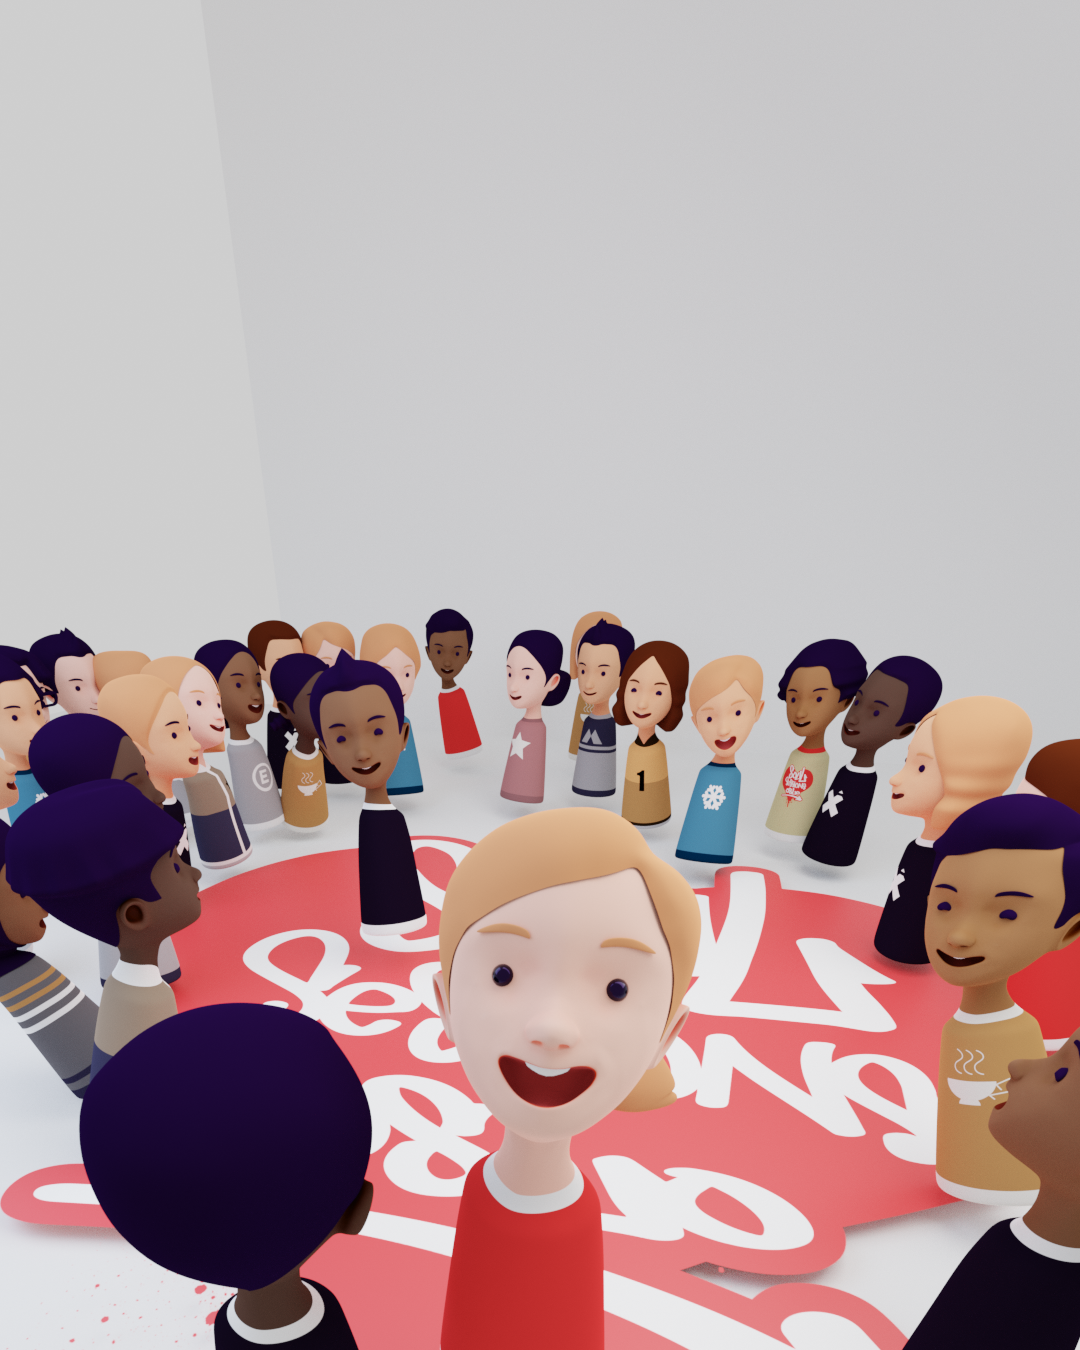 A group of avatars in a circle around two avatars dancing. Depicts a street dance battle.